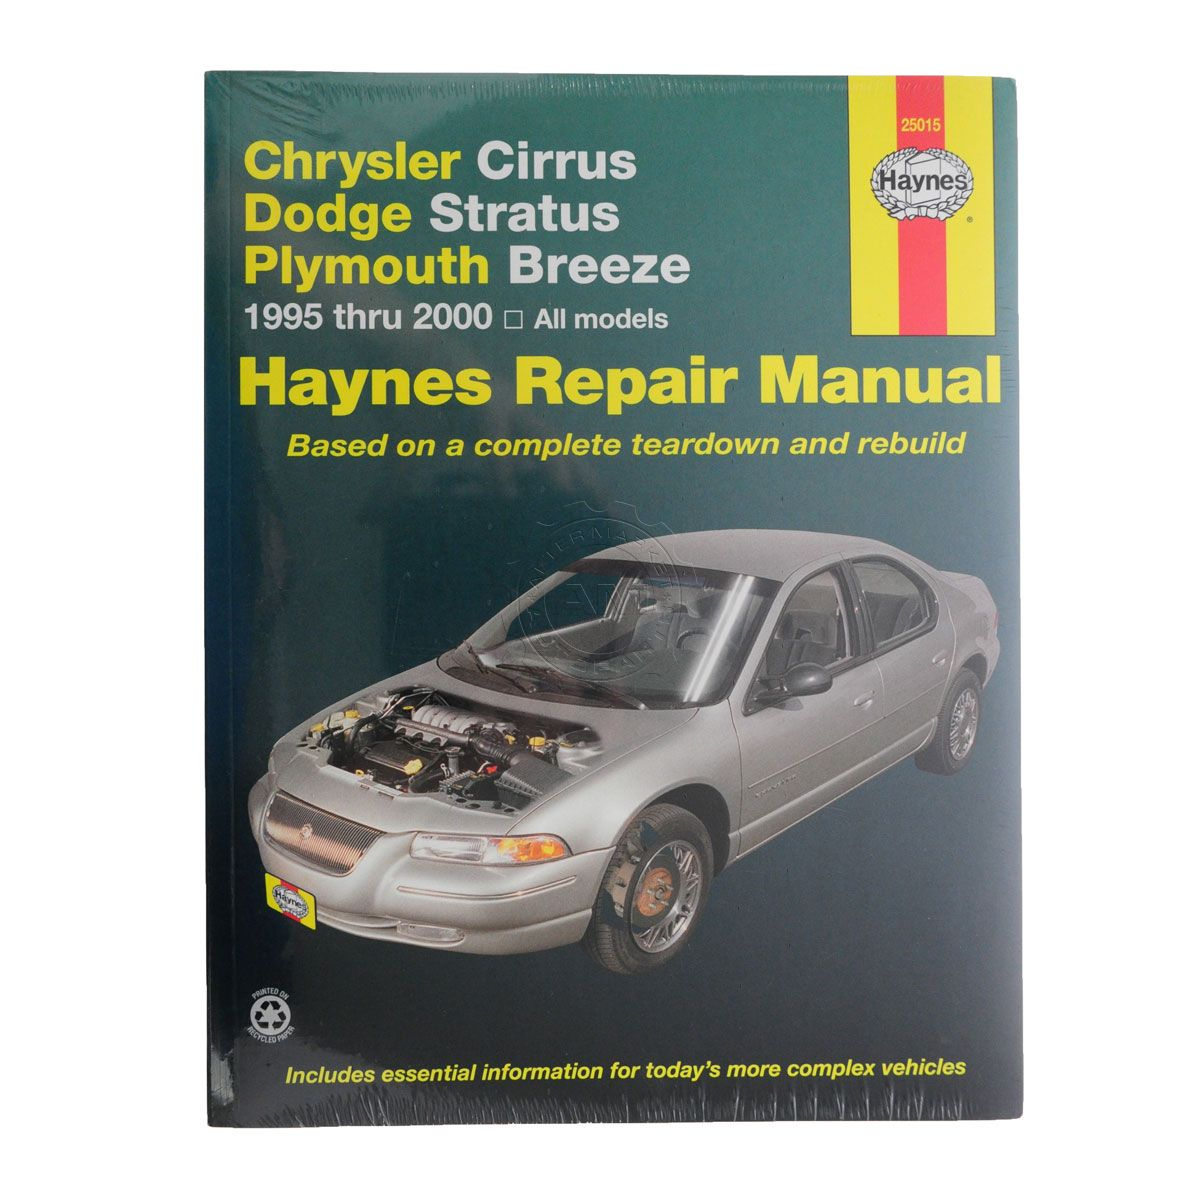 Haynes Repair Manual for 95 96 97-00 Cirrus Stratus Breeze